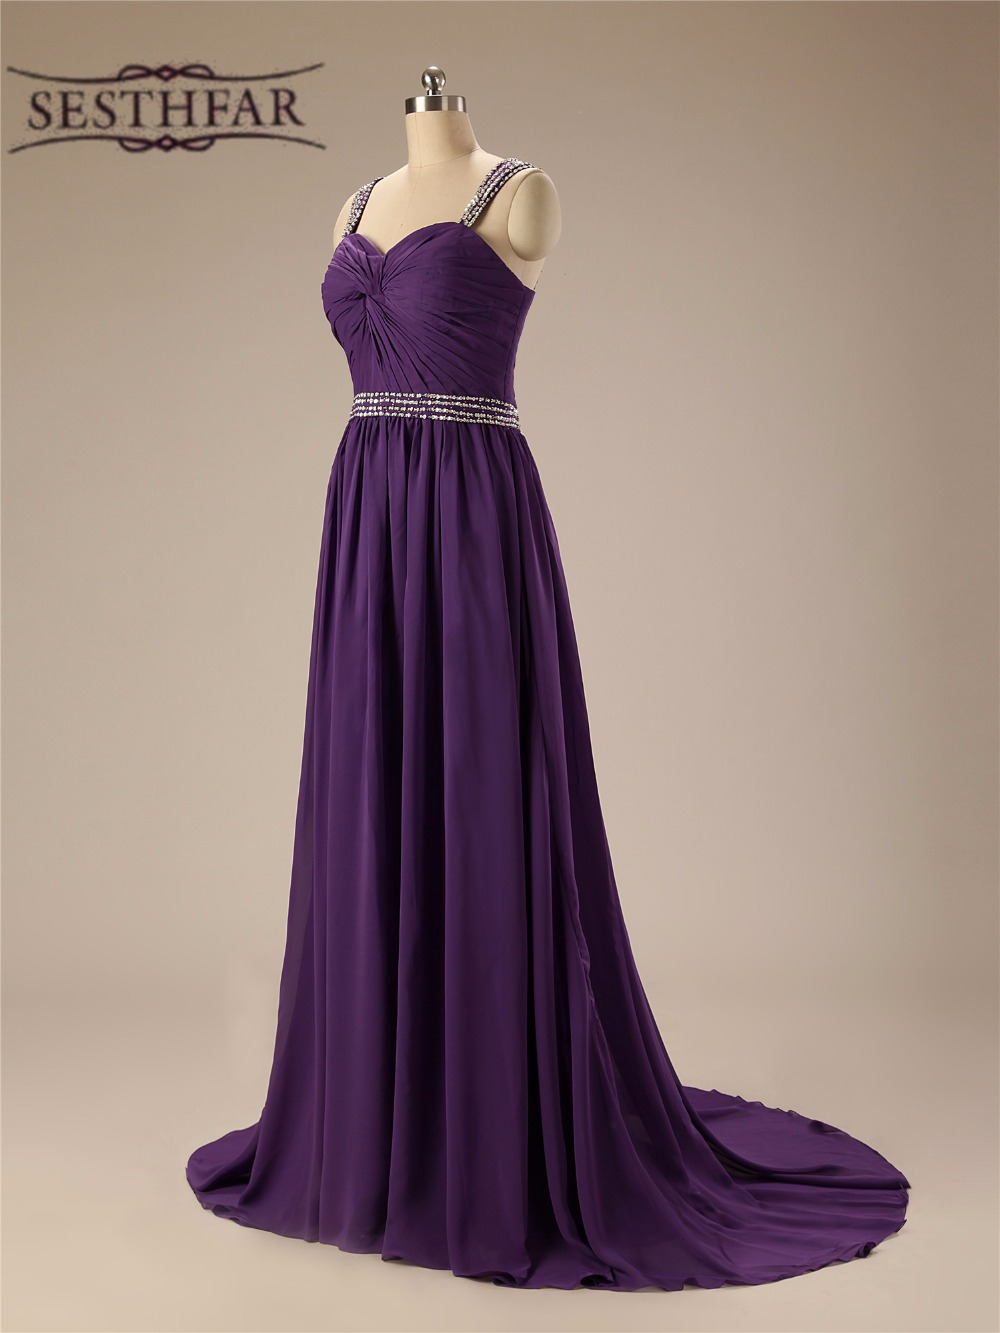 Elegant purple bridesmaid dresses promotion shop for promotional bridesmaid dresses long 2017 dark purple elegant new sweetheart chiffon wedding party dresses vestido madrinha jmc141 ombrellifo Image collections